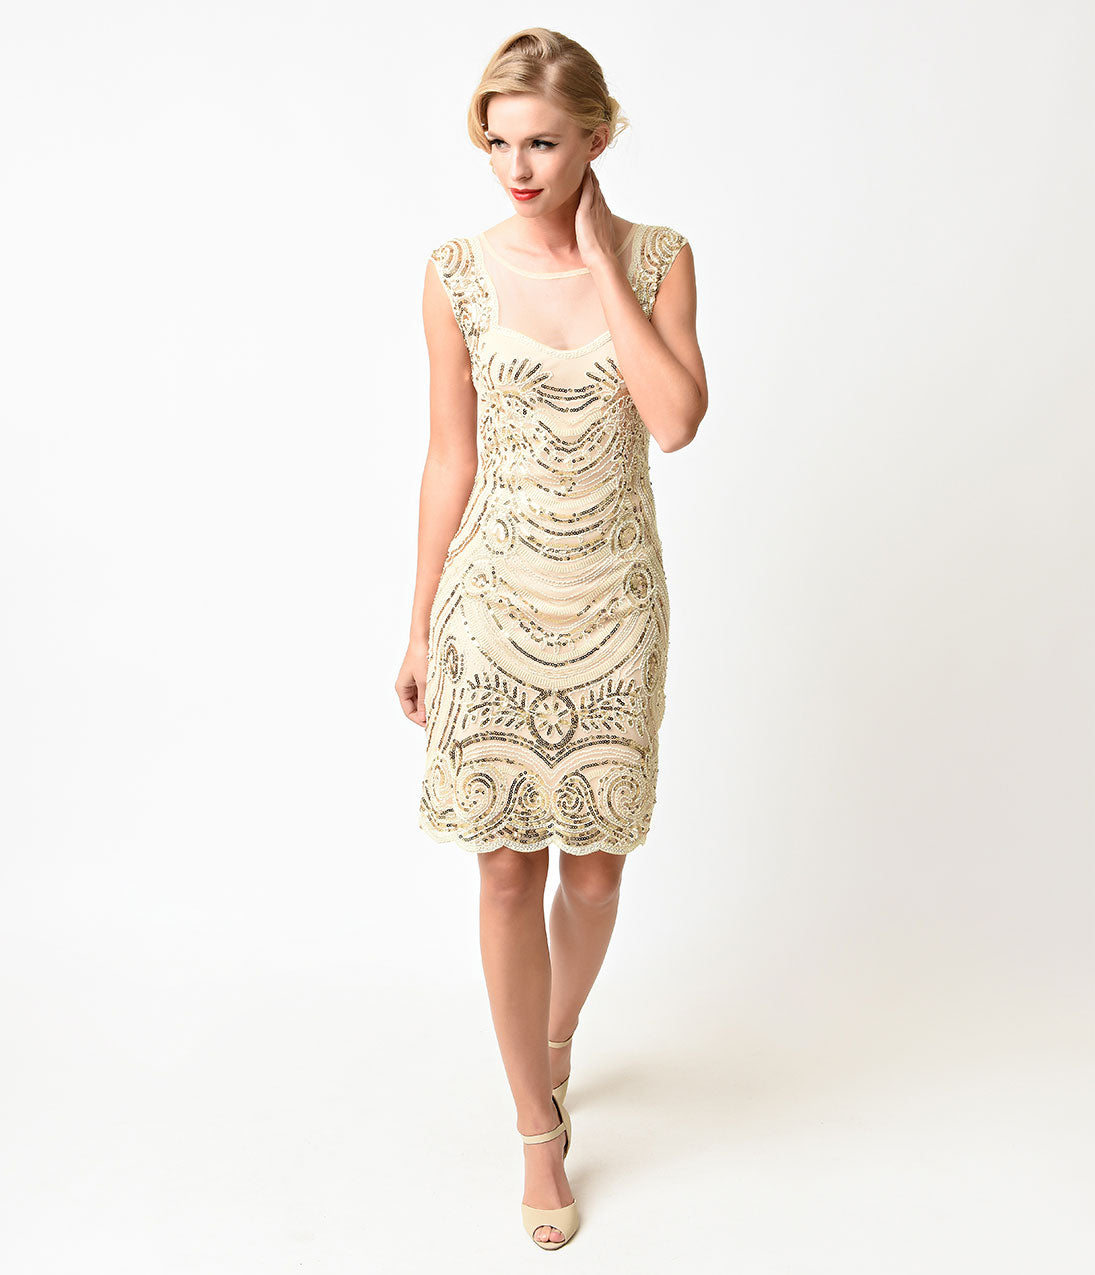 Roaring 20s Costumes- Flapper Costumes, Gangster Costumes 1920S Style Cream  Gold Beaded Deco Illusion Short Flapper Dress $43.00 AT vintagedancer.com